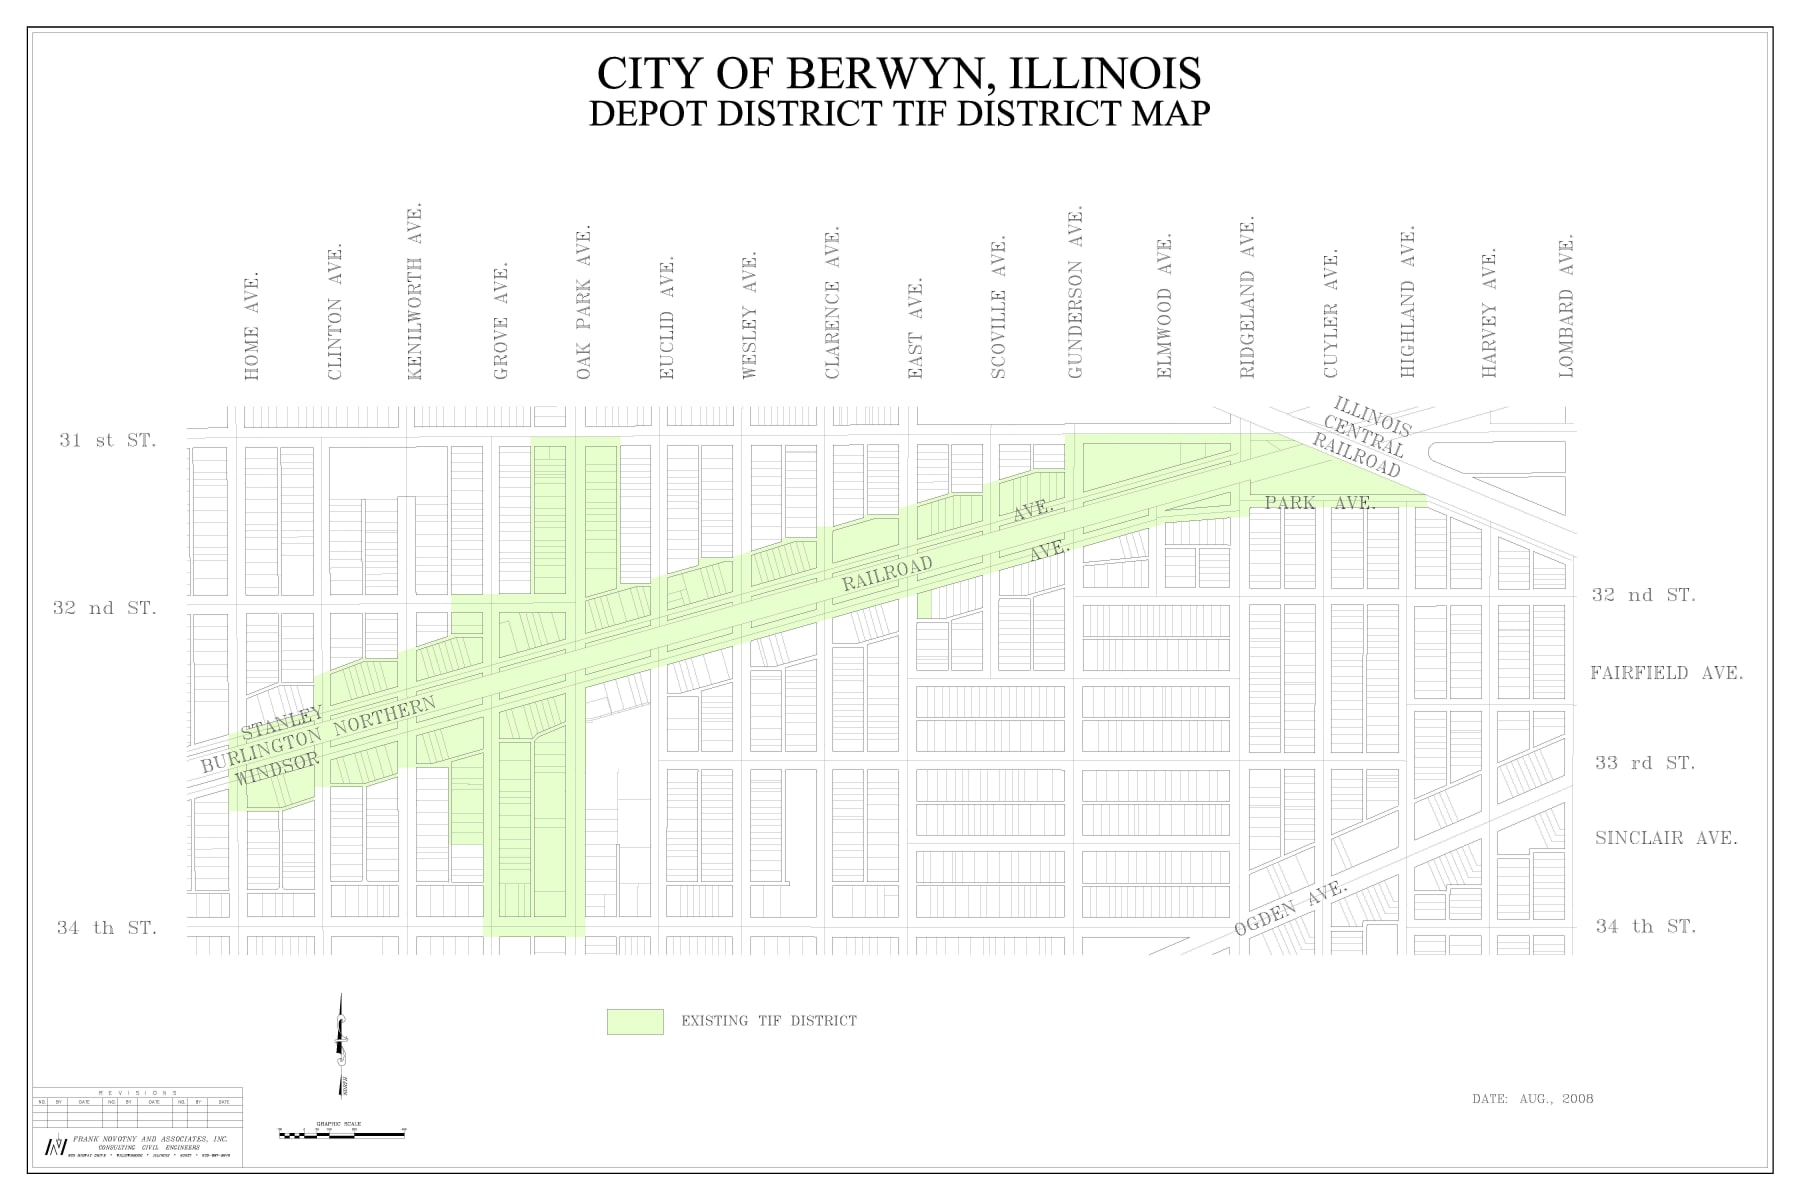 BERWYN_TIF_MAP_DEPOT_DISTRICT-w7200-w1800.jpg